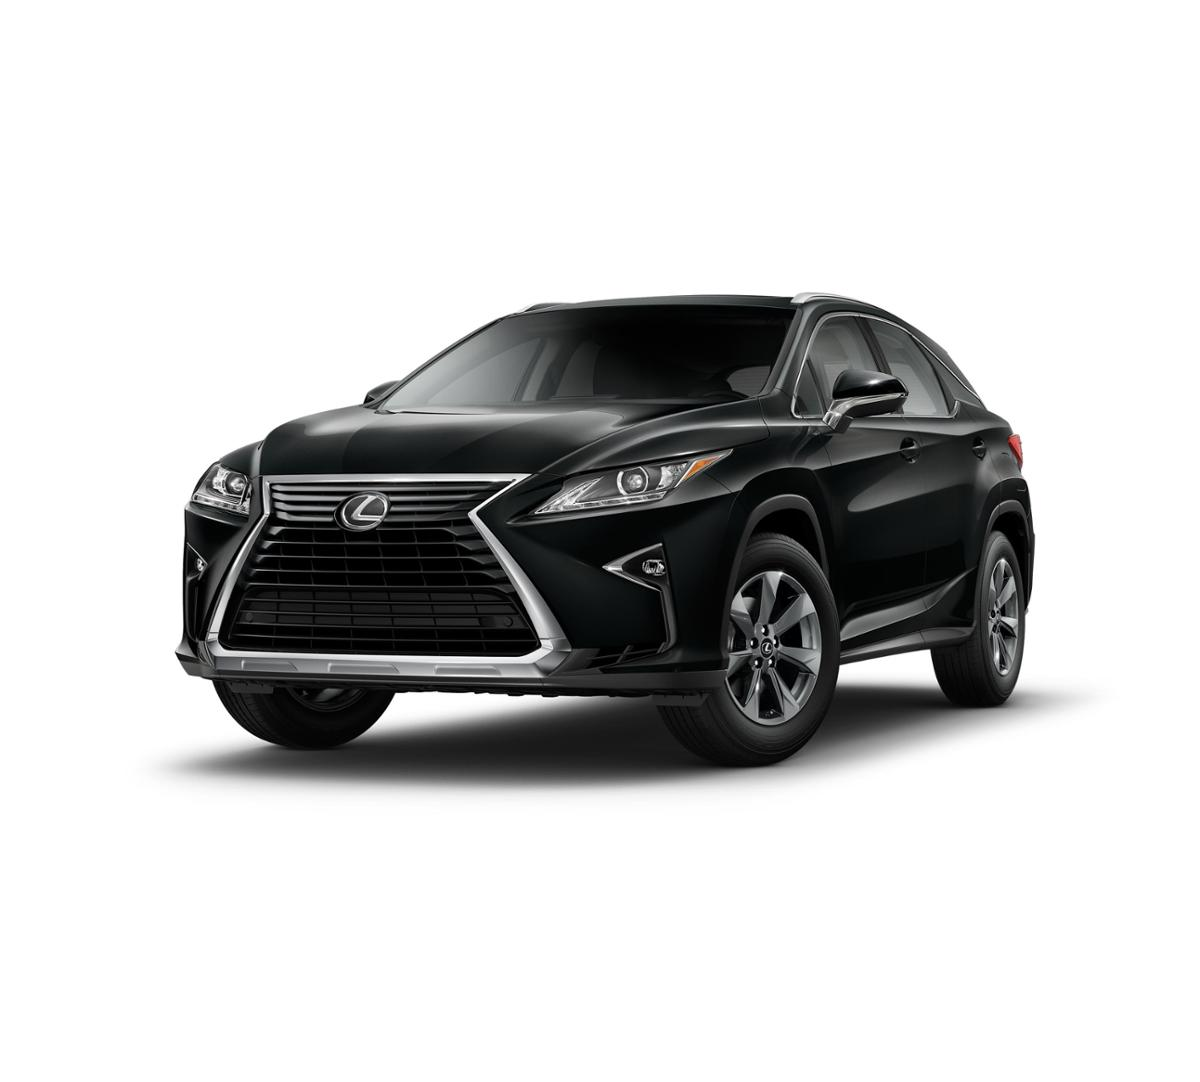 2018 Lexus RX 350 Vehicle Photo in Dallas, TX 75209